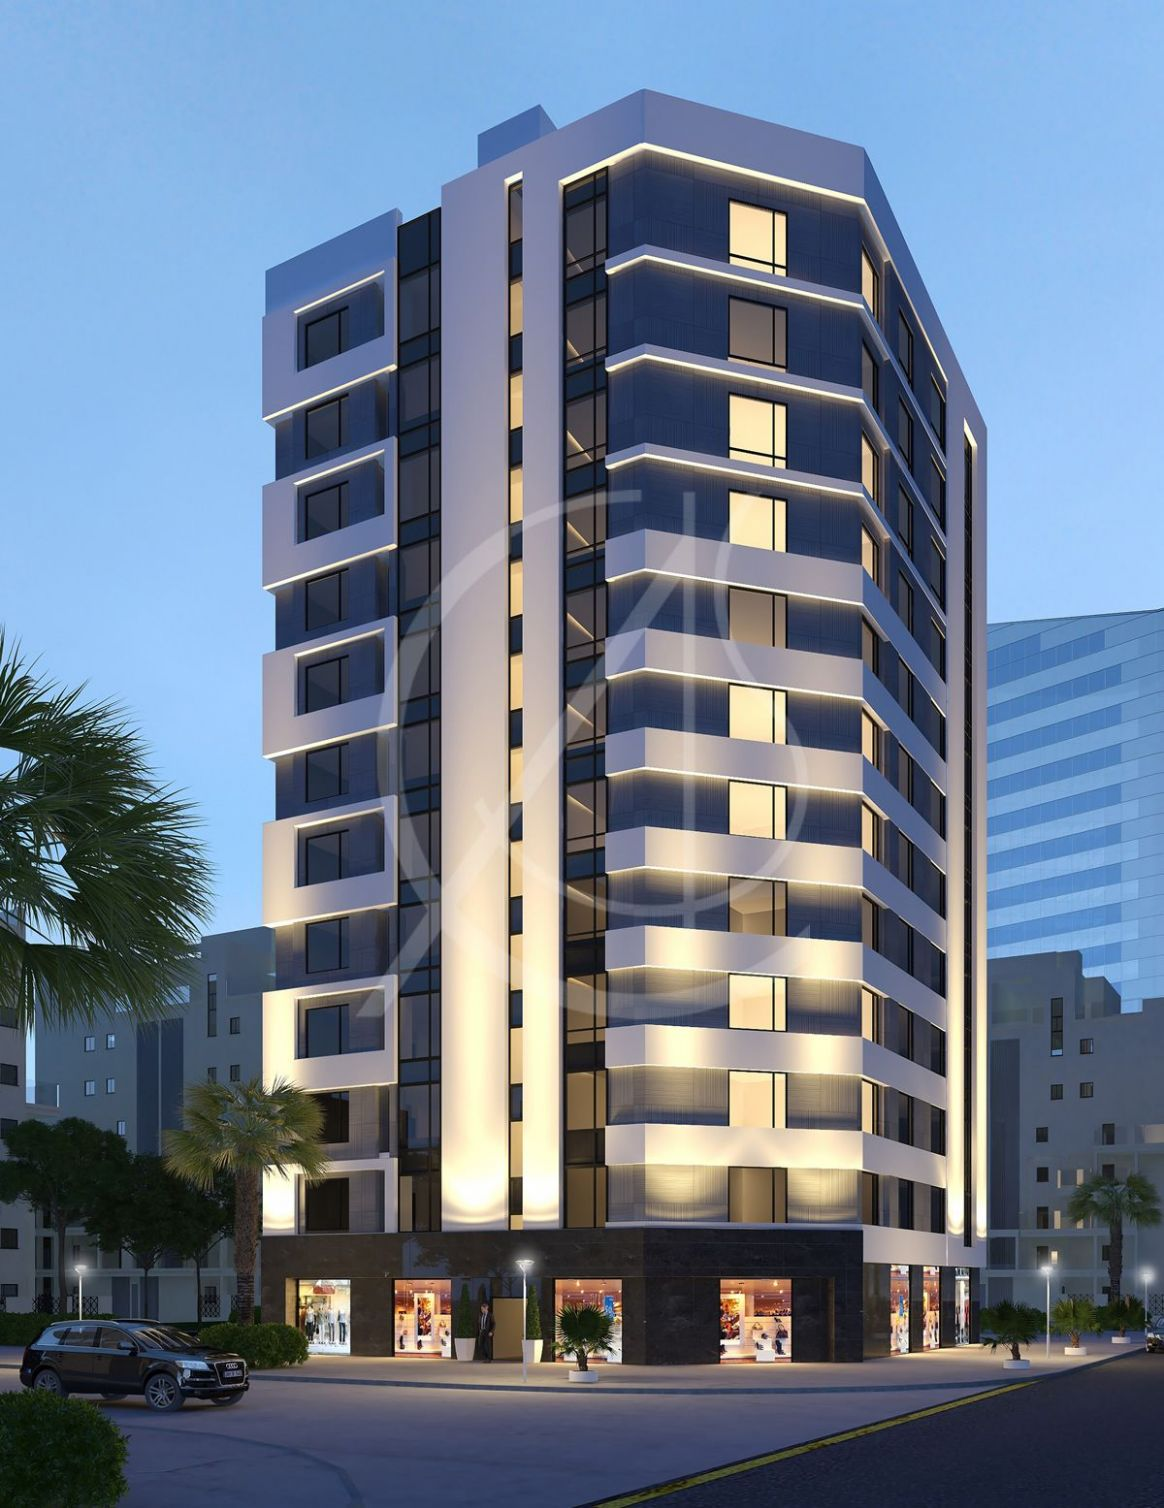 11 Story Modern Apartment Exterior Design (With images ..